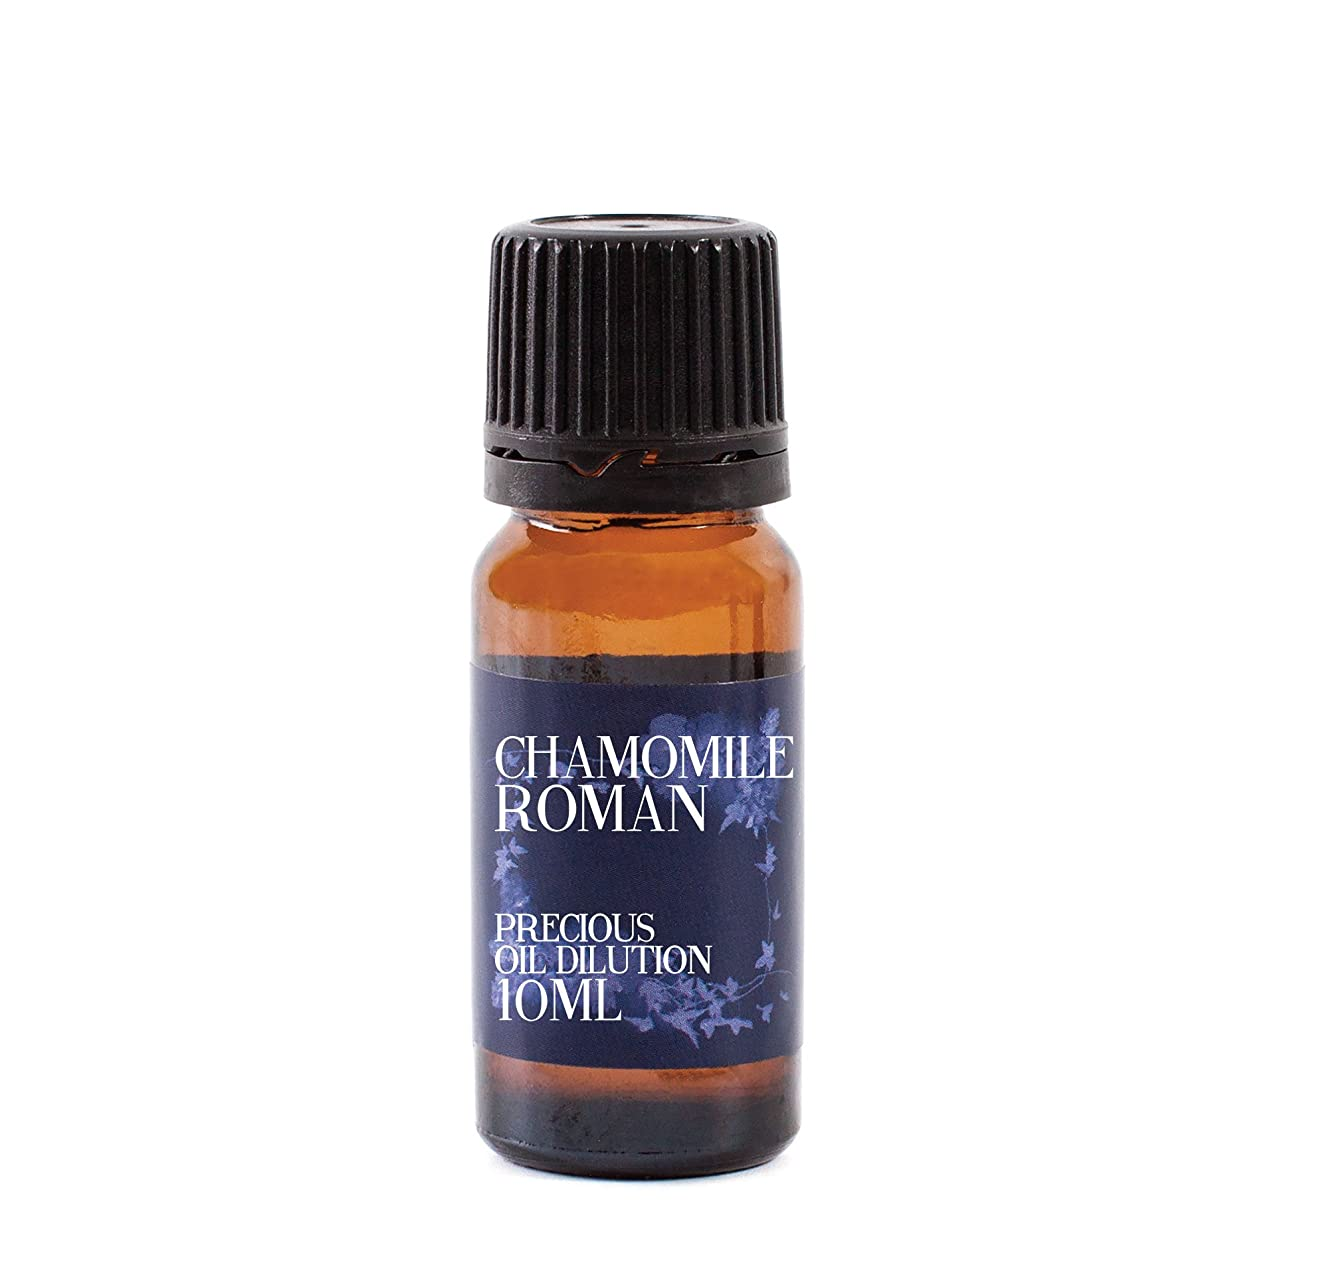 請求書最悪忠実なMystic Moments | Chamomile Roman Essential Oil Dilution - 10ml - 3% Jojoba Blend